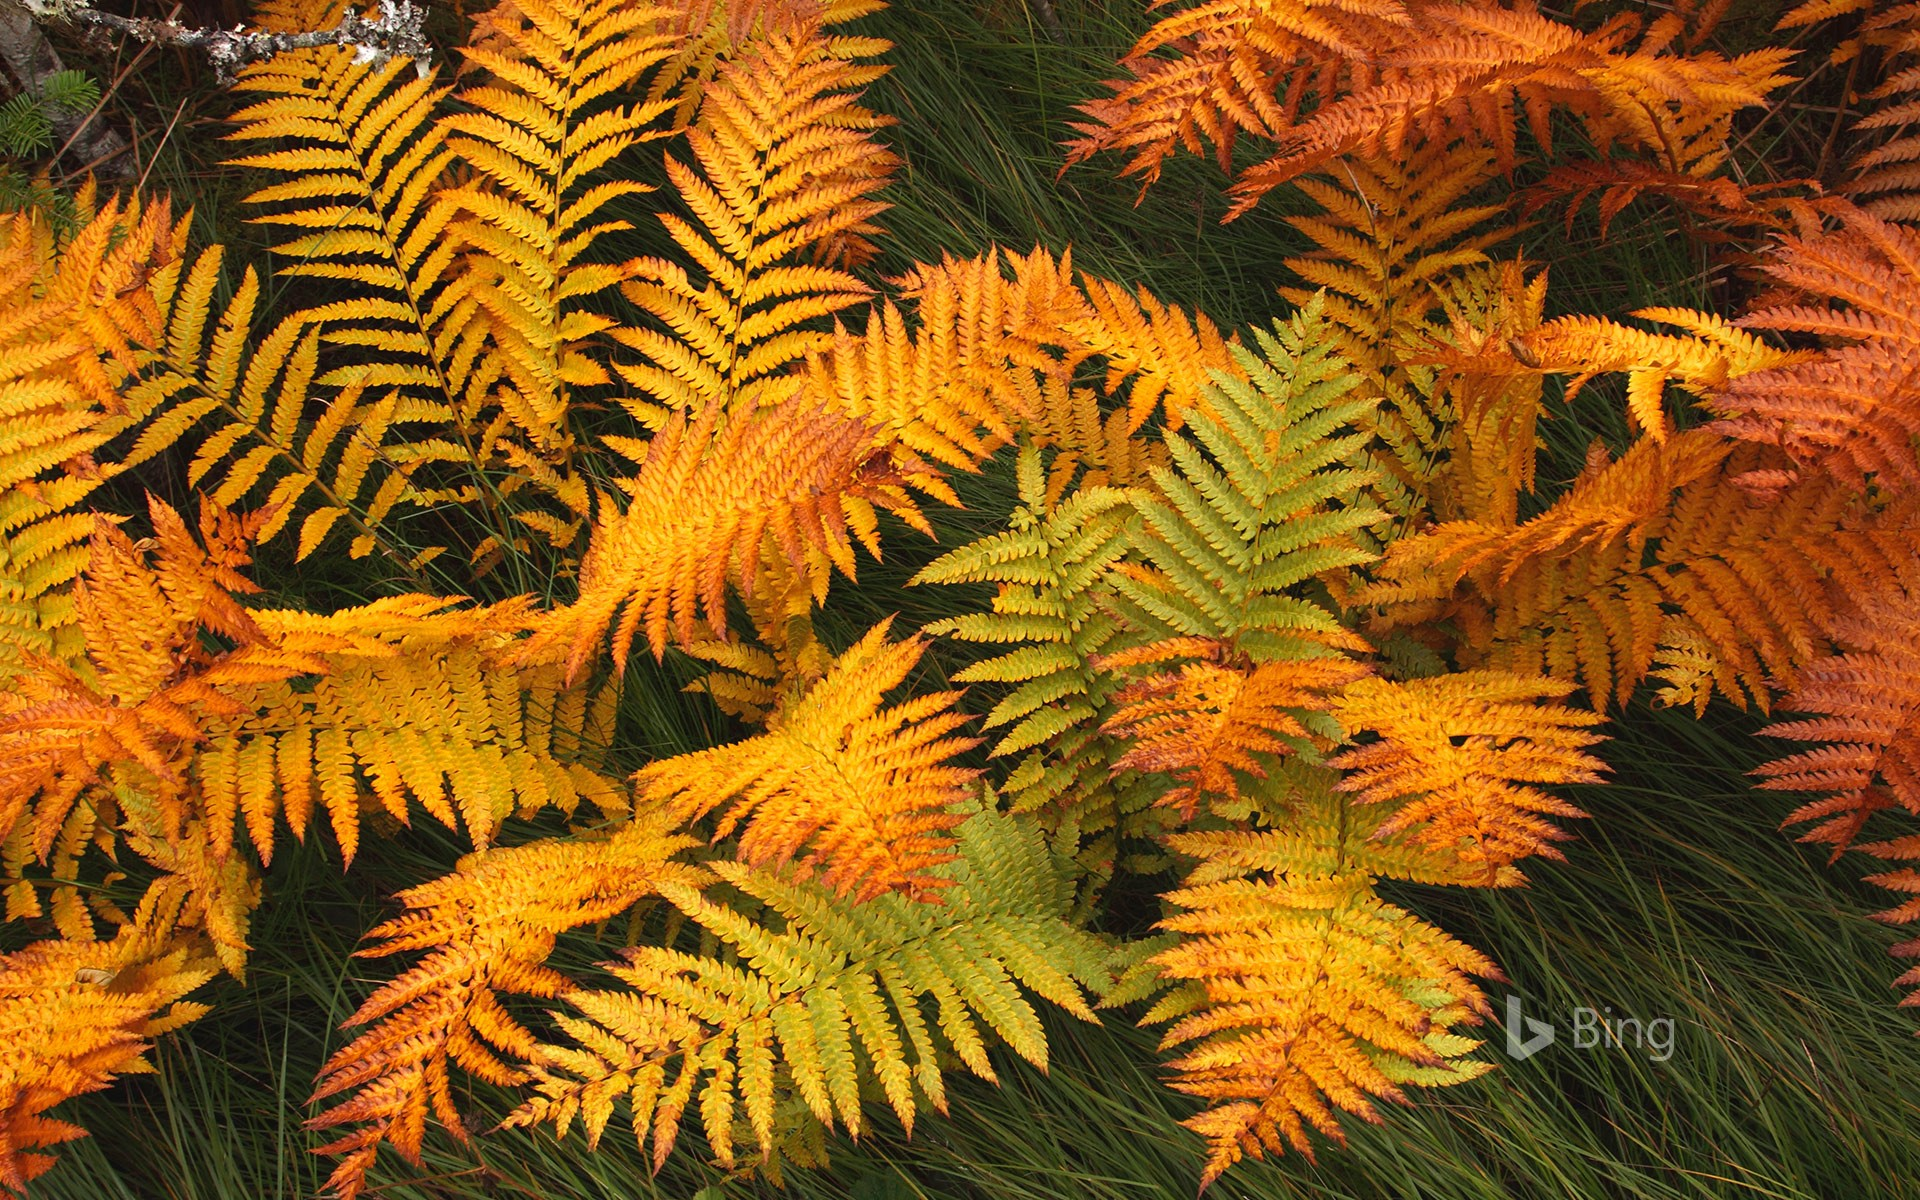 Fern fronds in autumn, Gros Morne National Park, Newfoundland, Canada